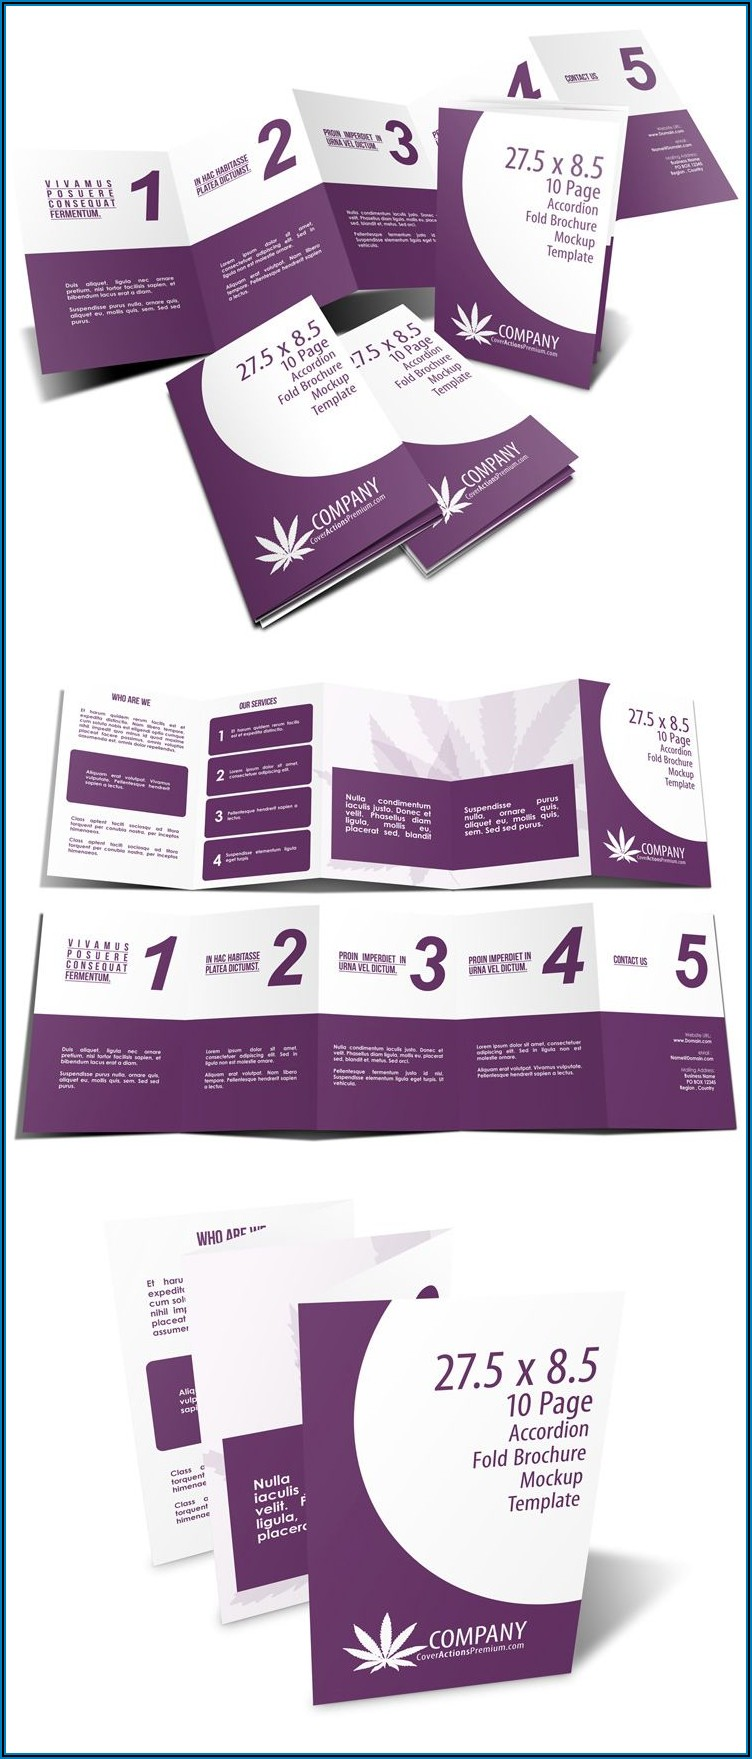 5 Fold Accordion Brochure Mockup